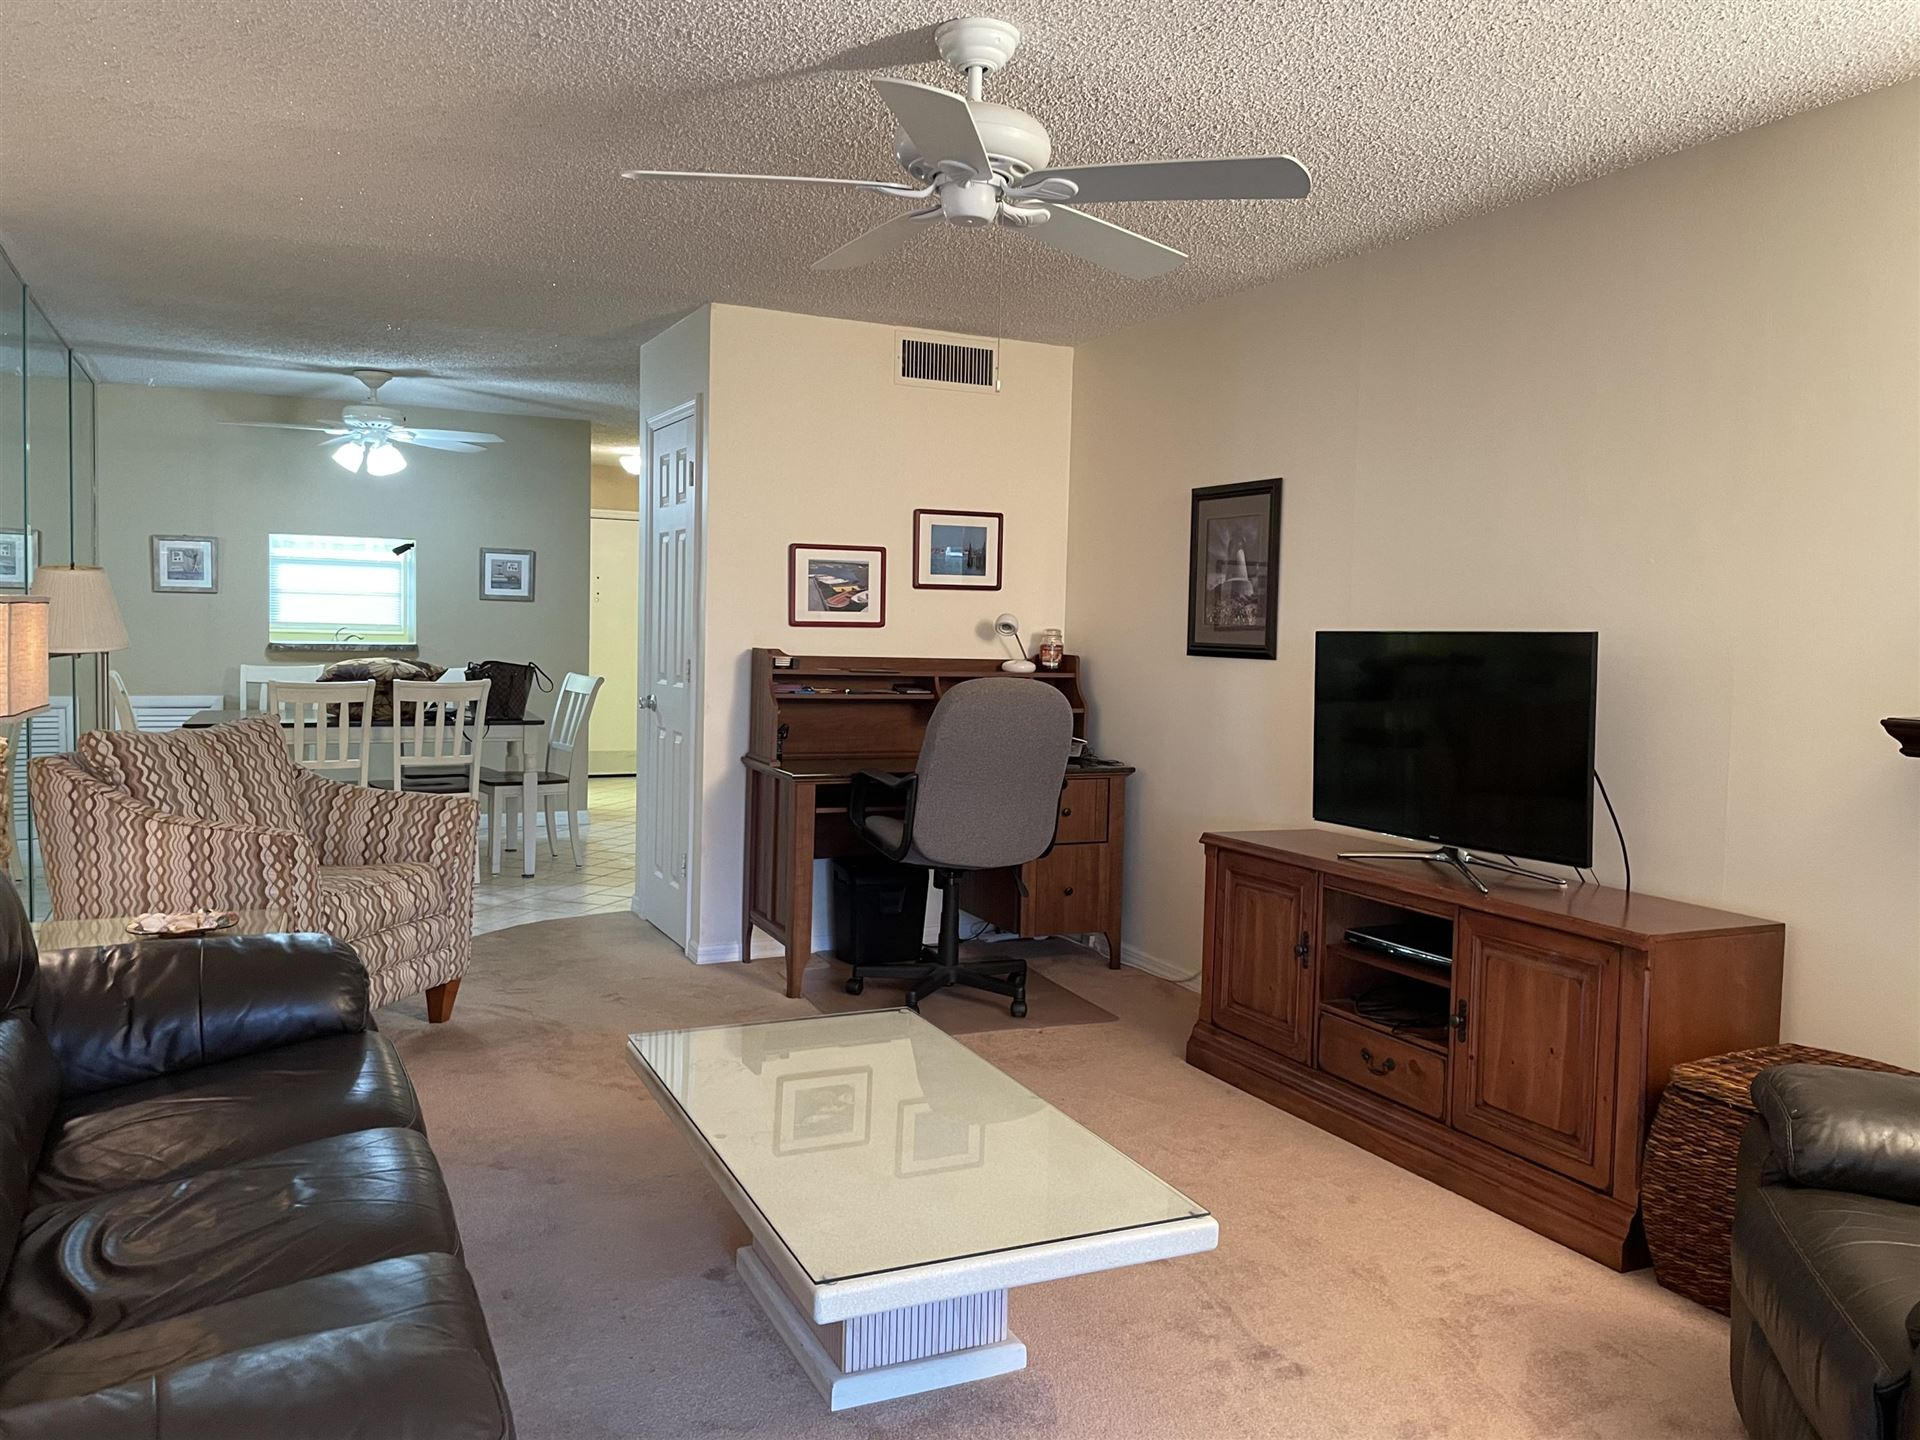 Photo of 2929 SE Ocean Boulevard #141-3, Stuart, FL 34996 (MLS # RX-10685423)